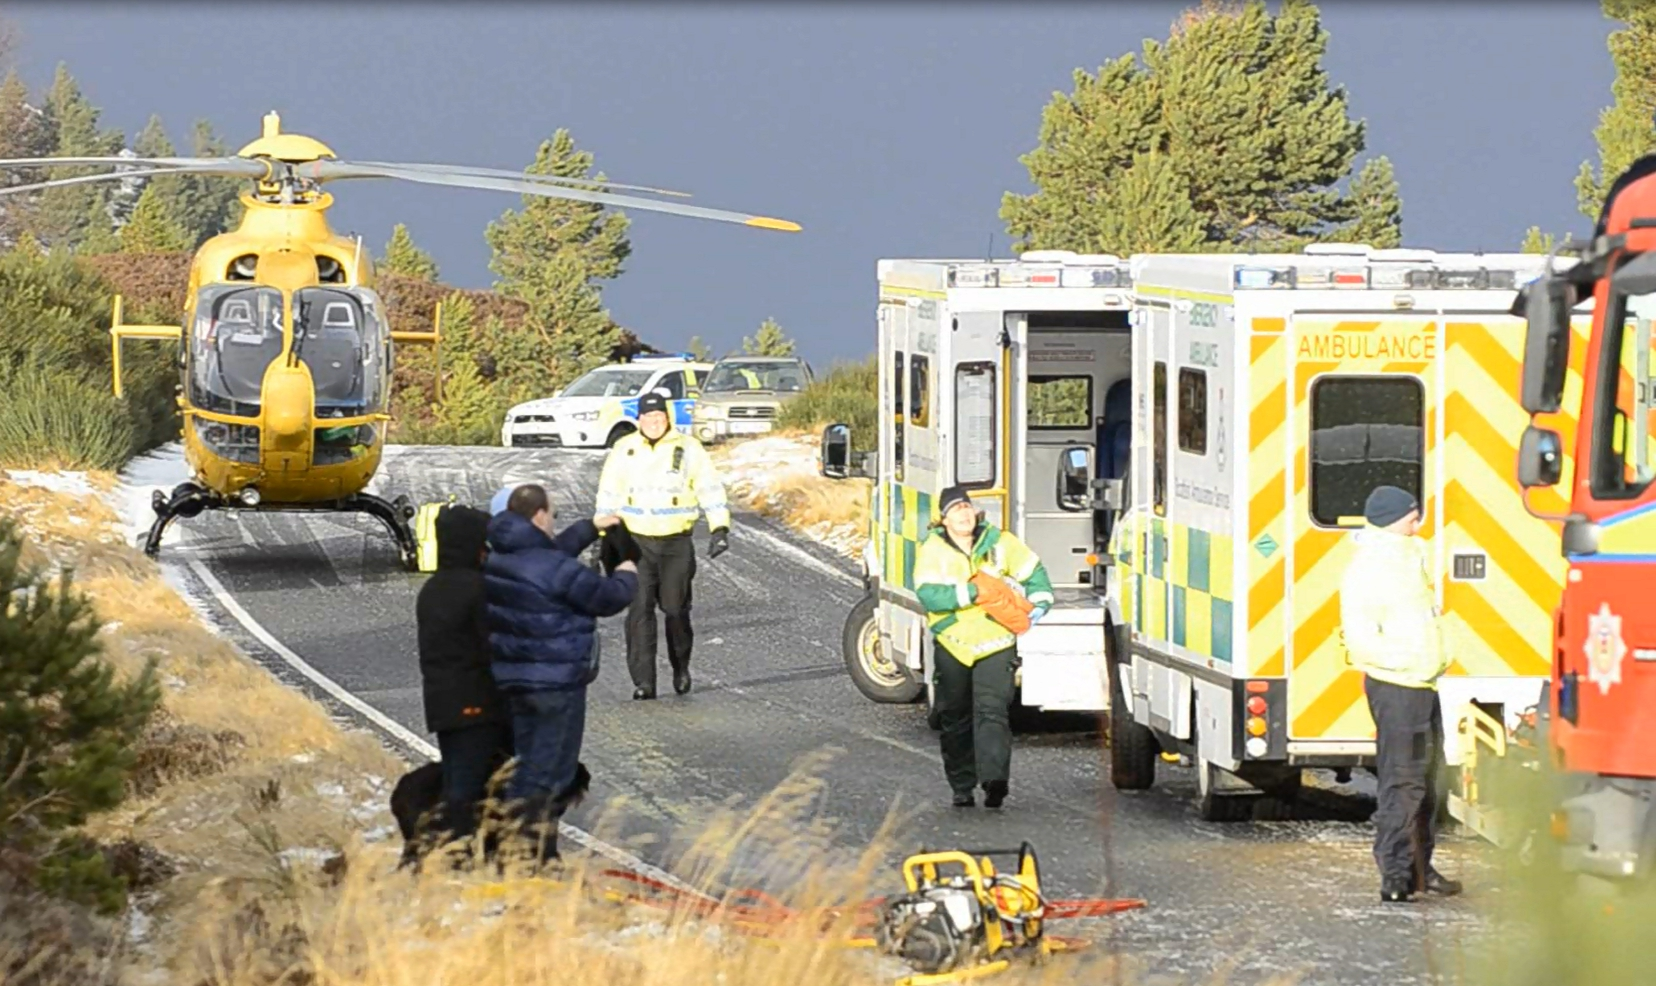 Crews free woman from vehicle after B9007 crash near Carrbridge